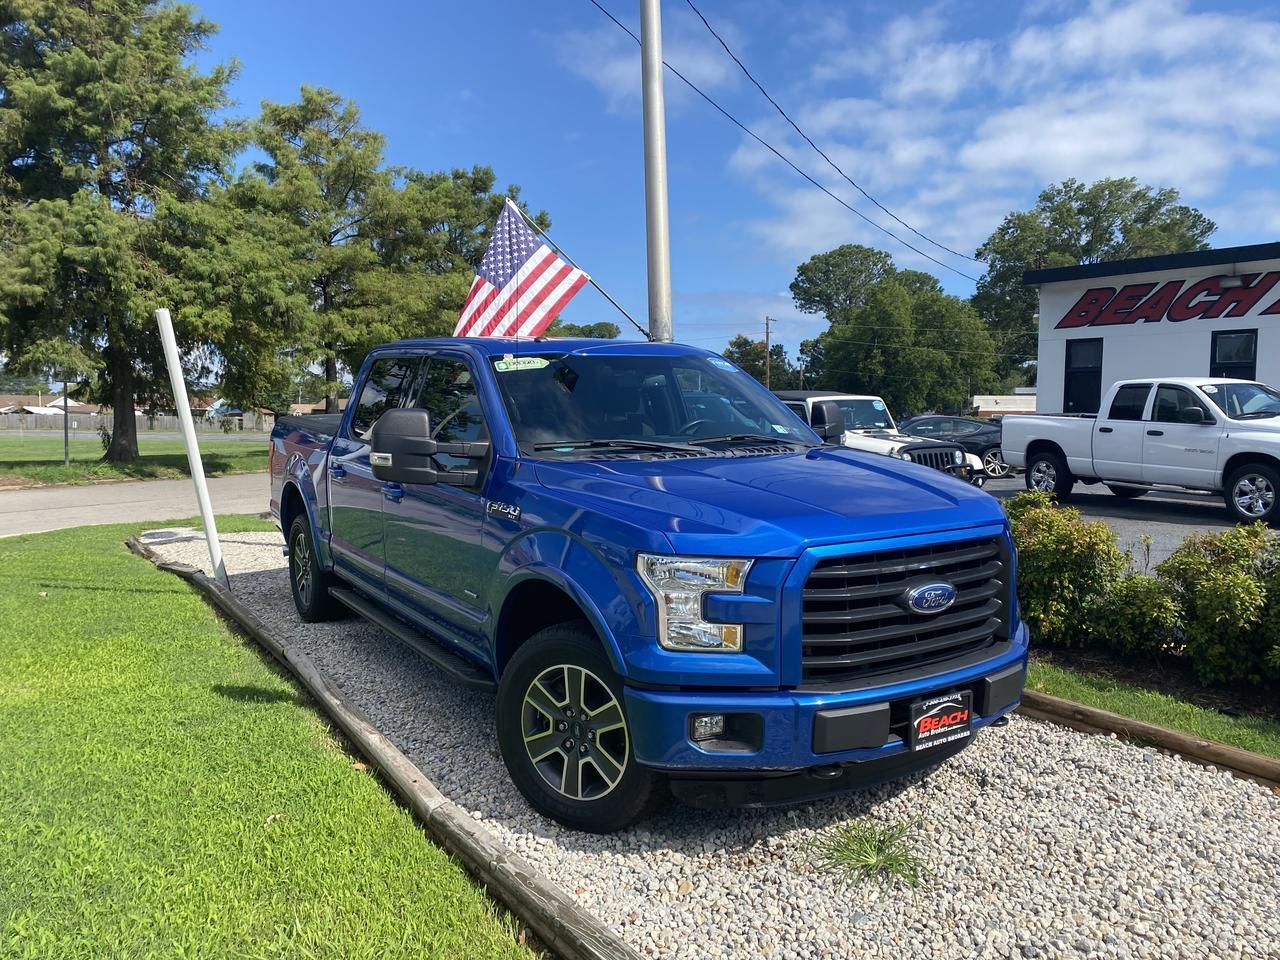 2016 FORD F-150 XLT SUPERCREW 4X4, WARRANTY, NAV, SUNROOF, BACKUP CAM, TOW PKG, 1 OWNER, CLEAN CARFAX, LOW MILES! Norfolk VA